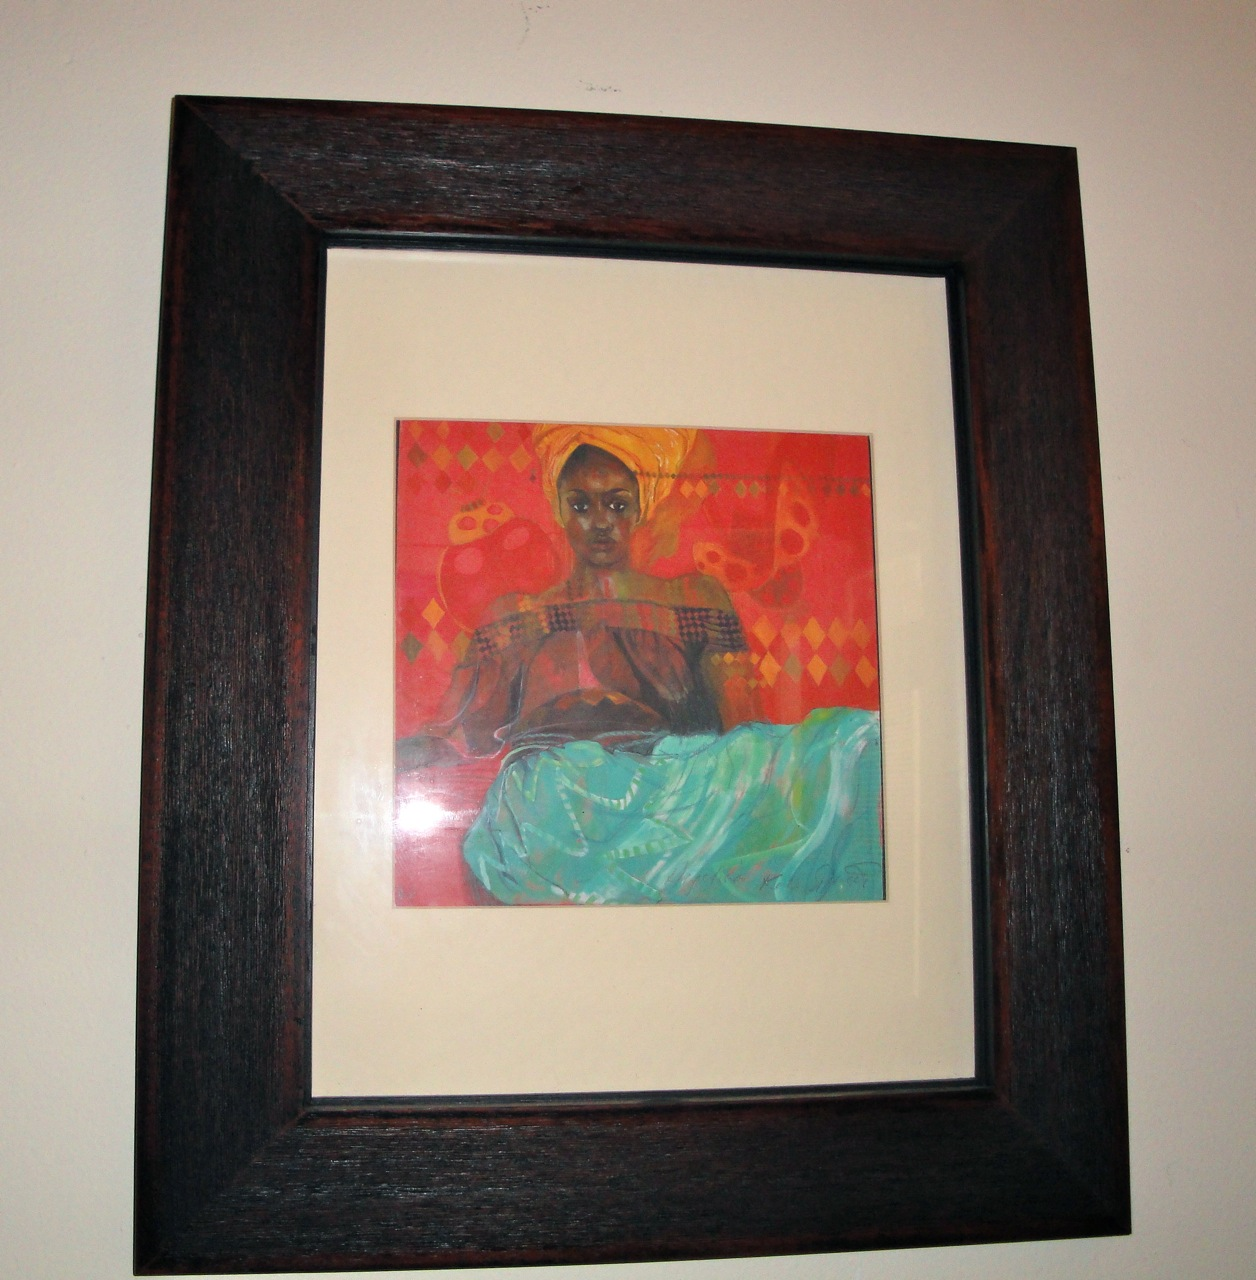 Cheap Frames From The Craft Store And Imagination: Discount Art Framing At Michaels